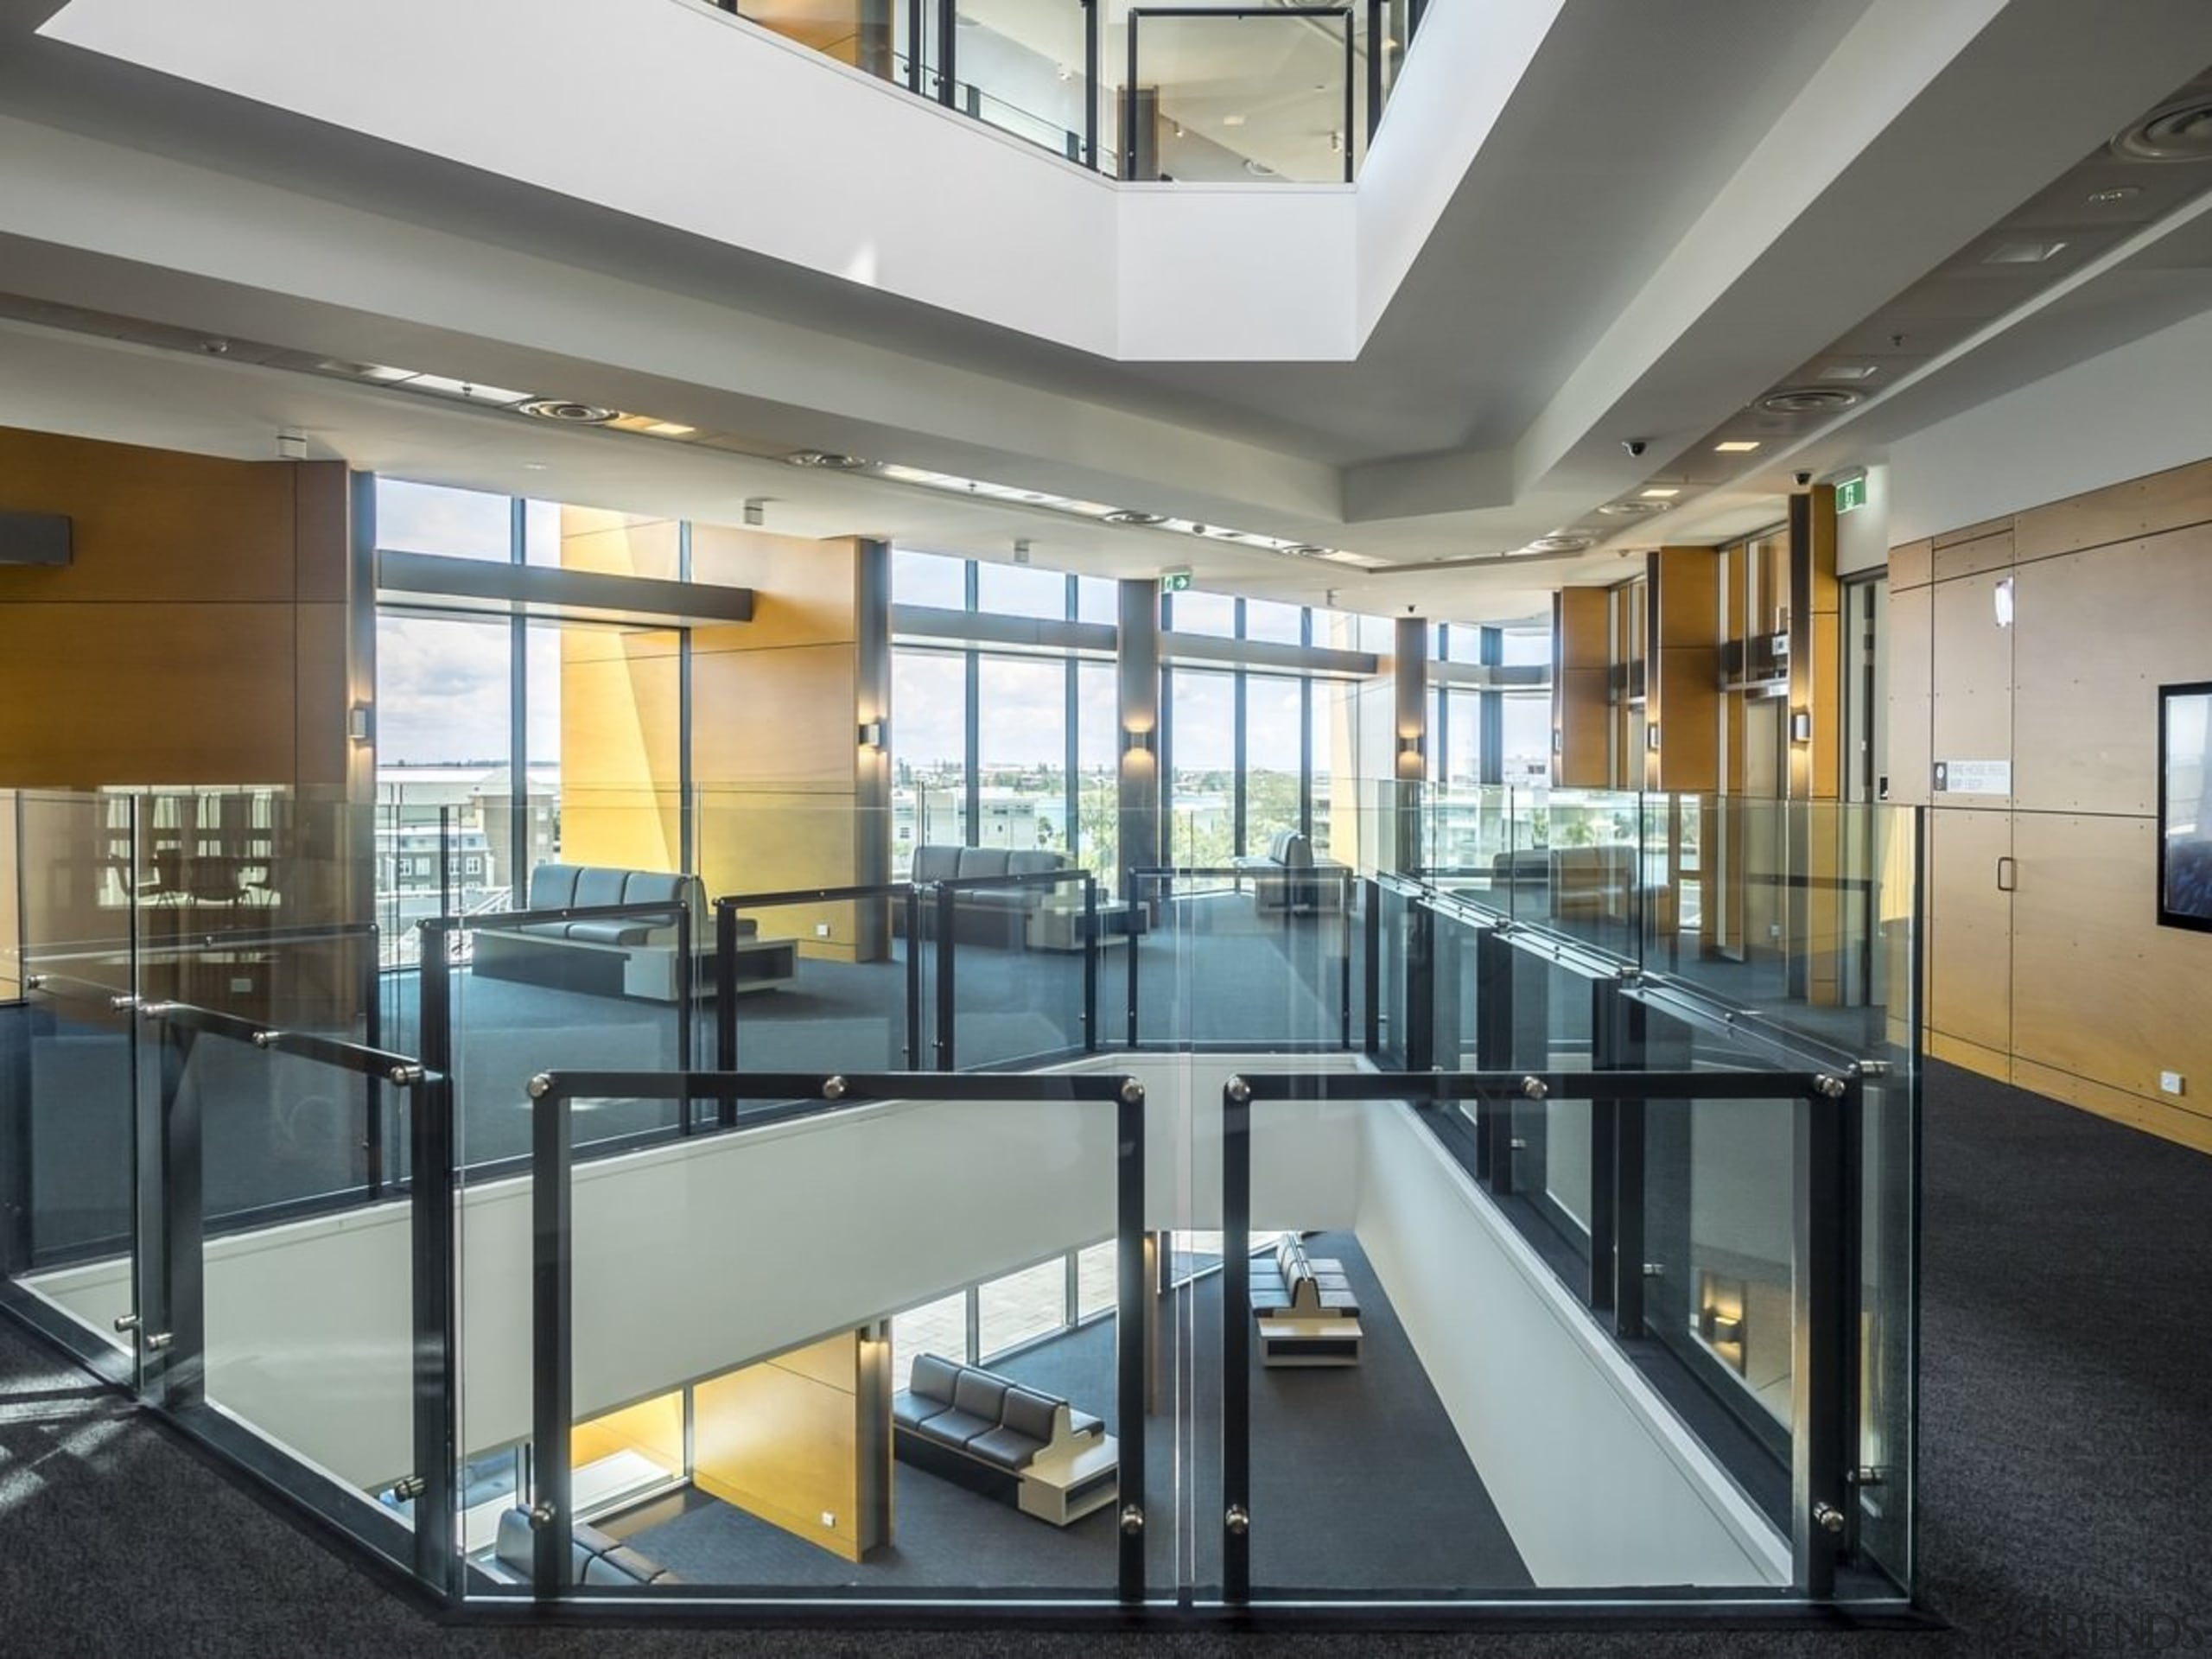 Newcastle Courthouse – Cox Architecture - Newcastle Courthouse daylighting, glass, interior design, lobby, real estate, gray